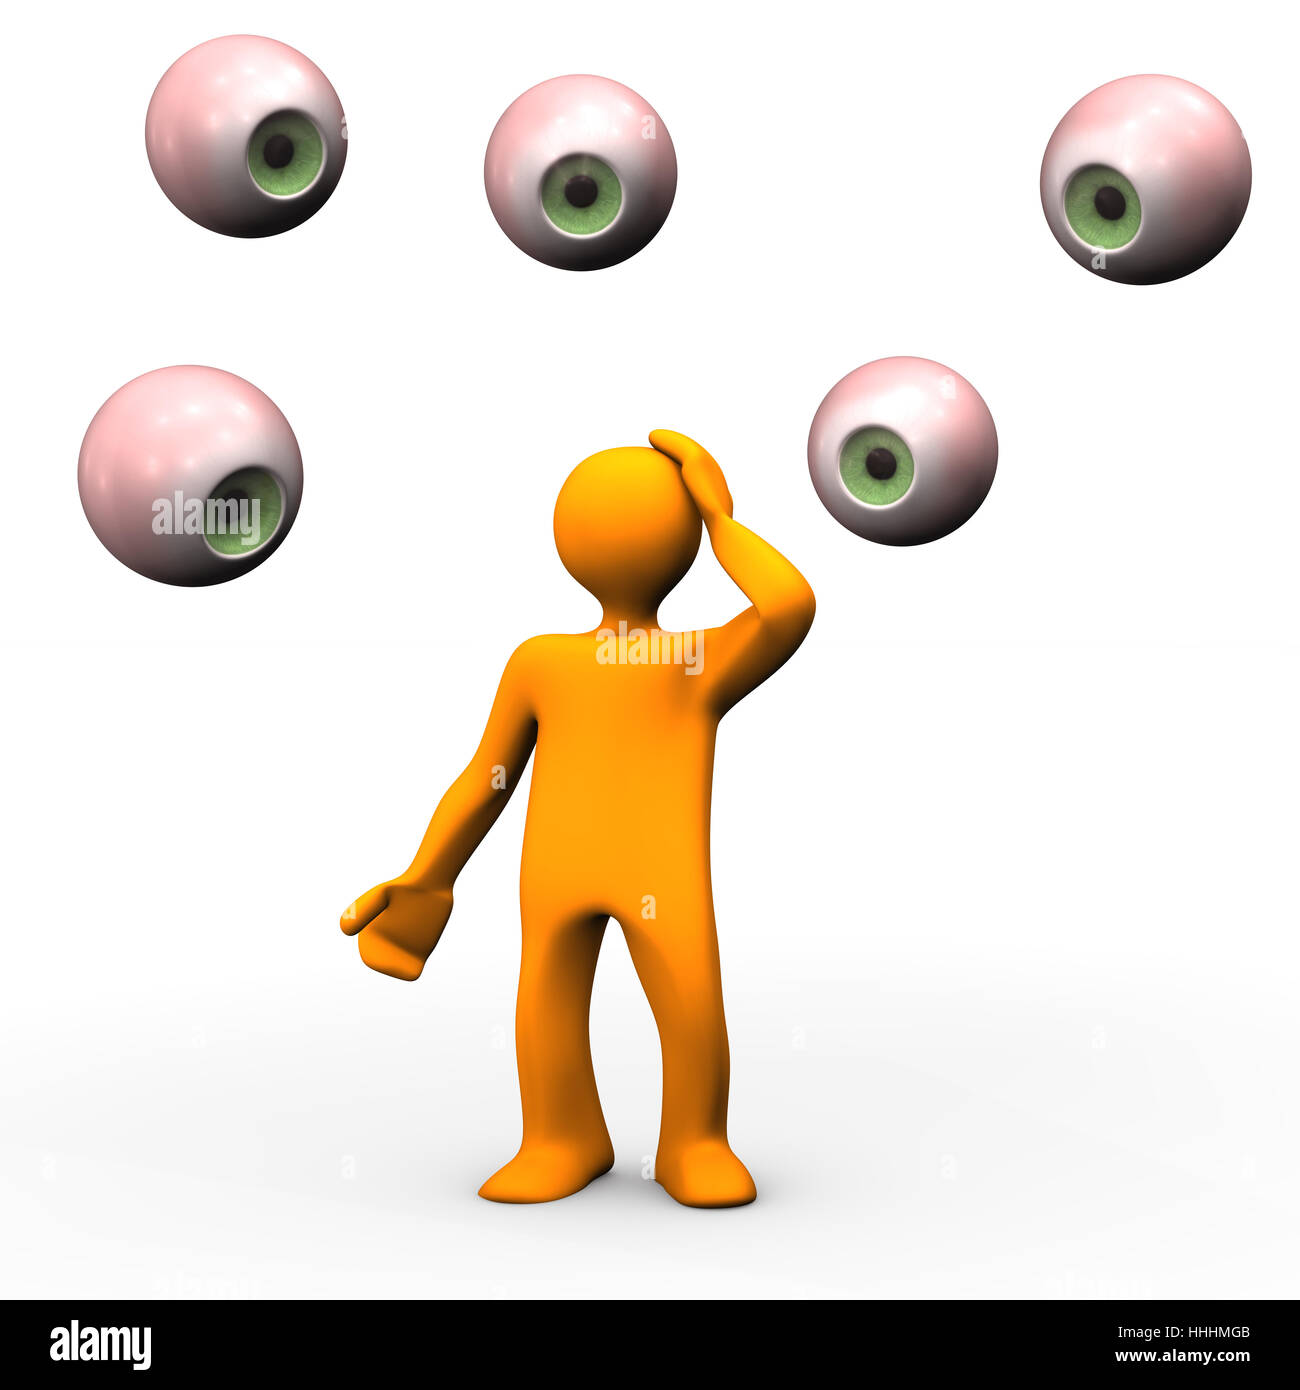 spy, protect, protection, data, informations, substratums, facts, information, - Stock Image